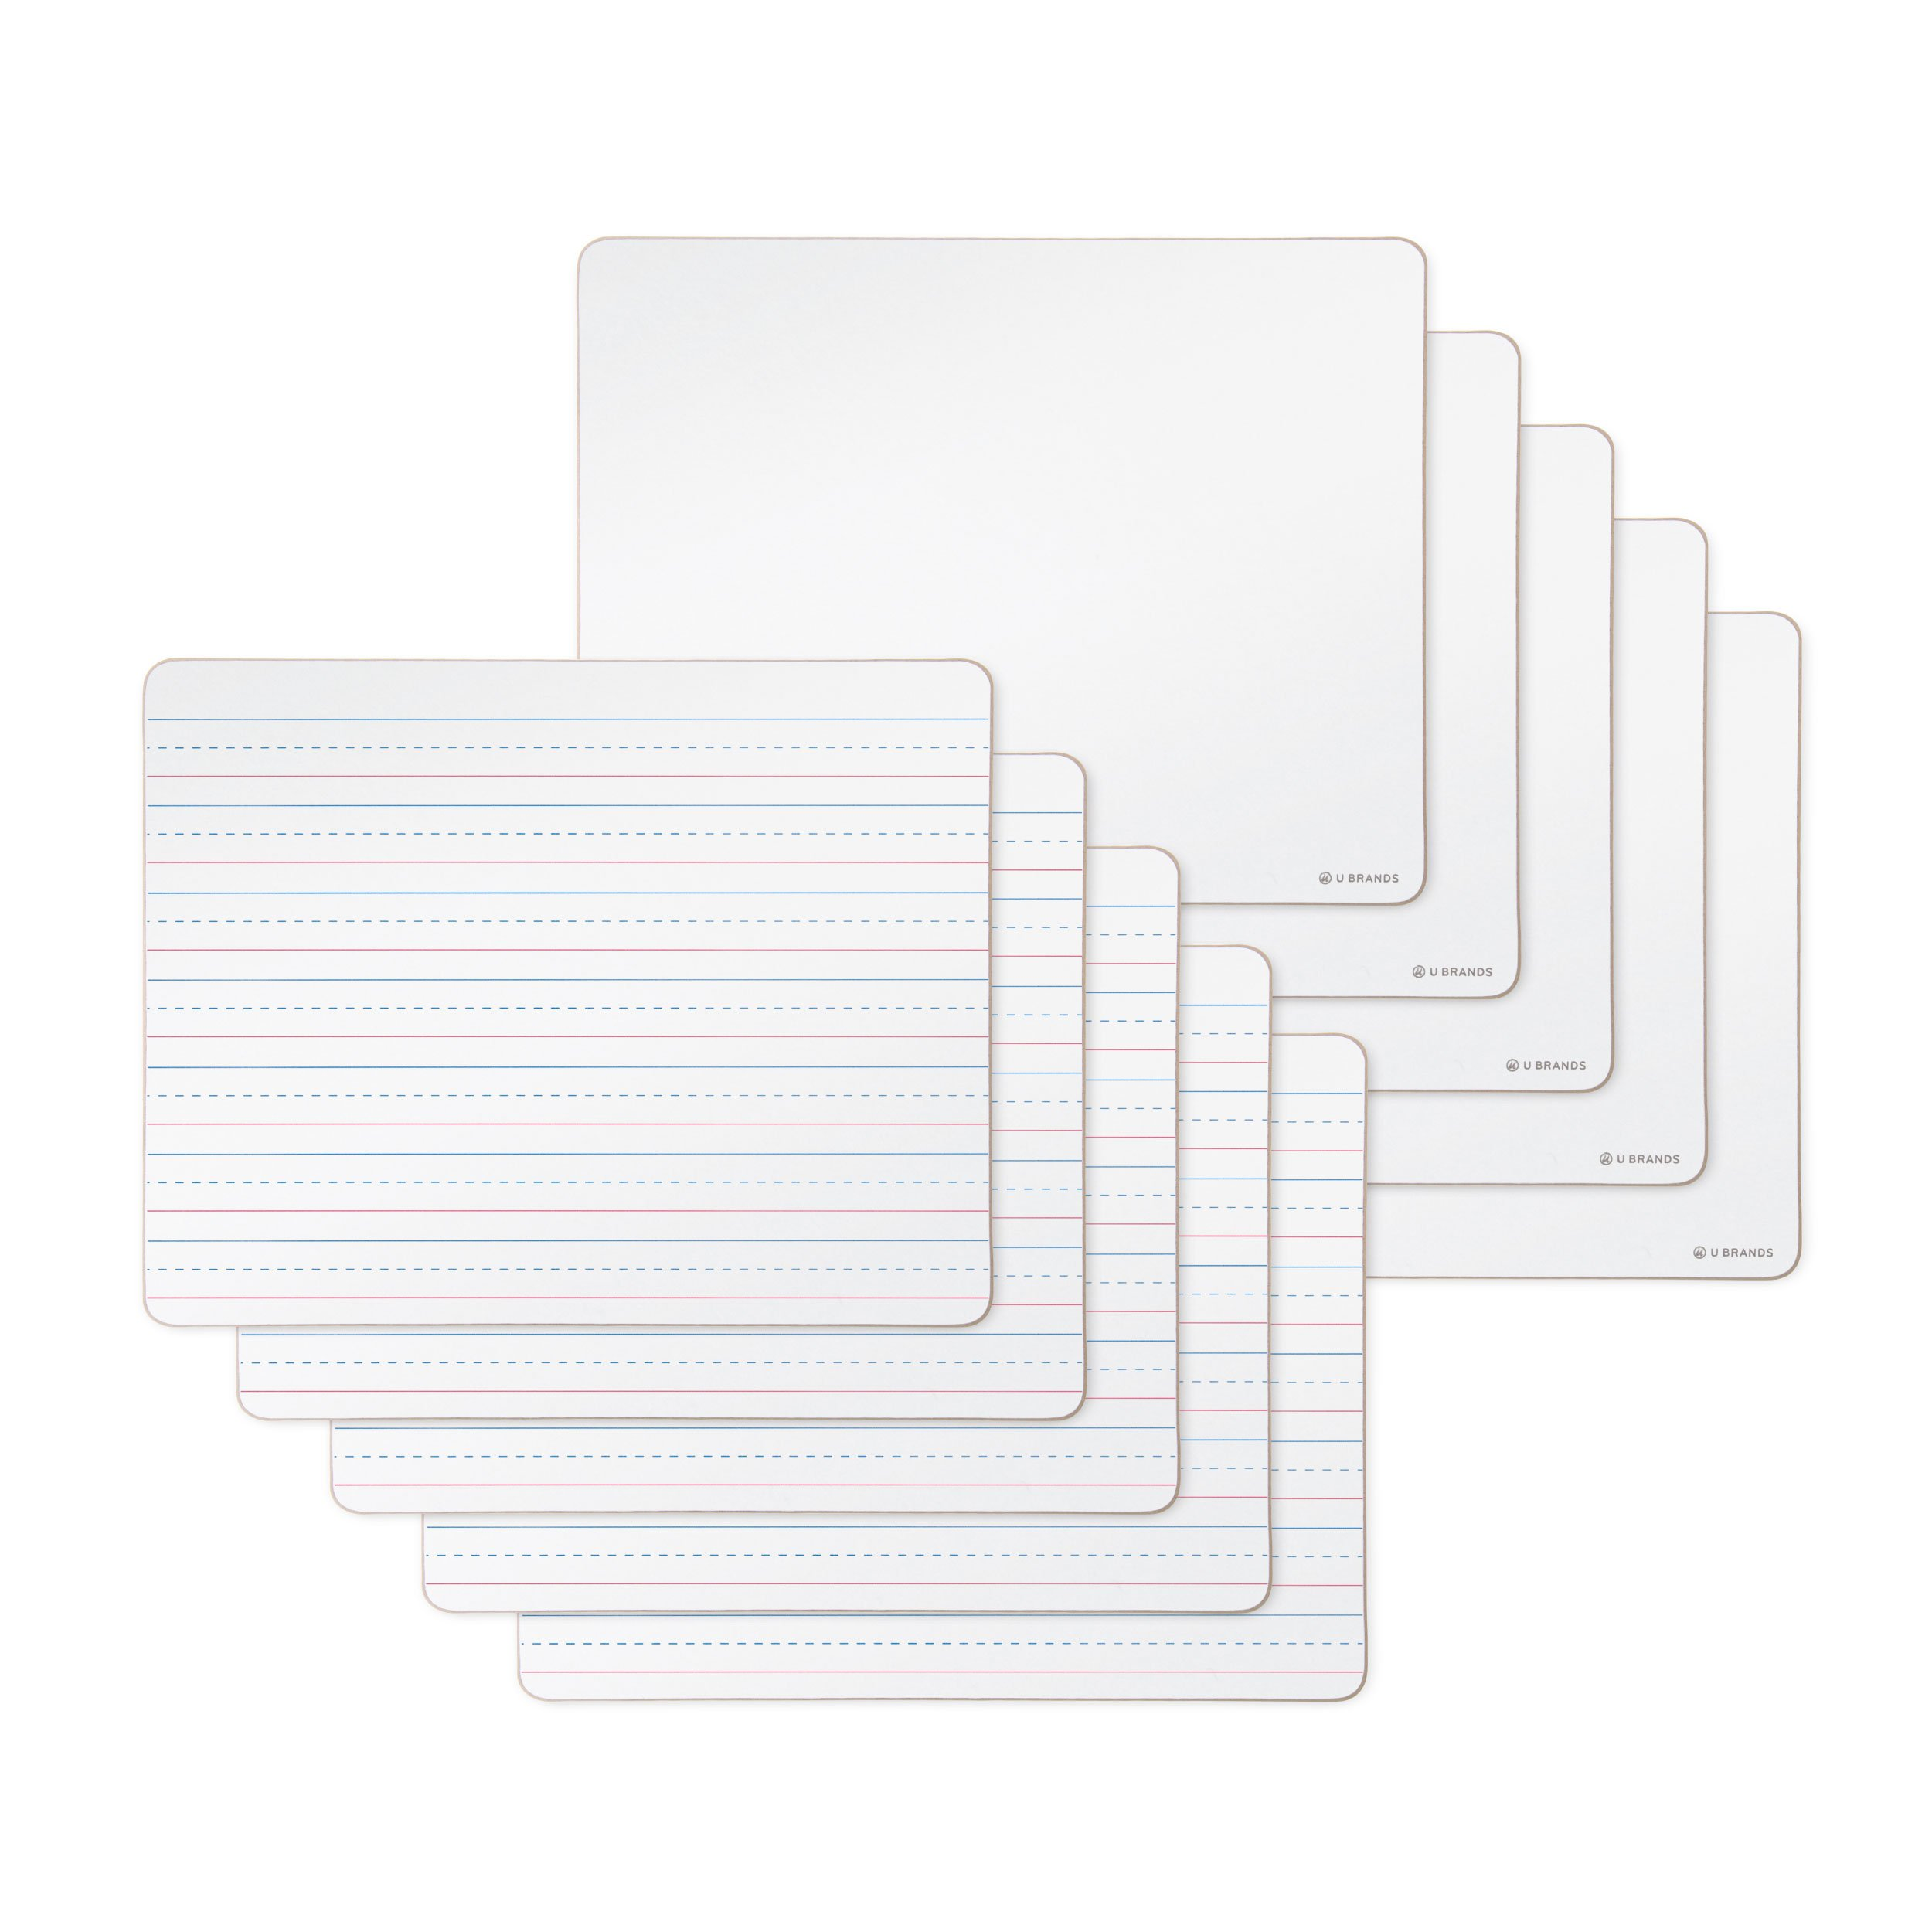 U Brands Dry Erase Lap Boards, Double Sided, Ruled and Plain, 9 x 12 Inches, 10-Pack